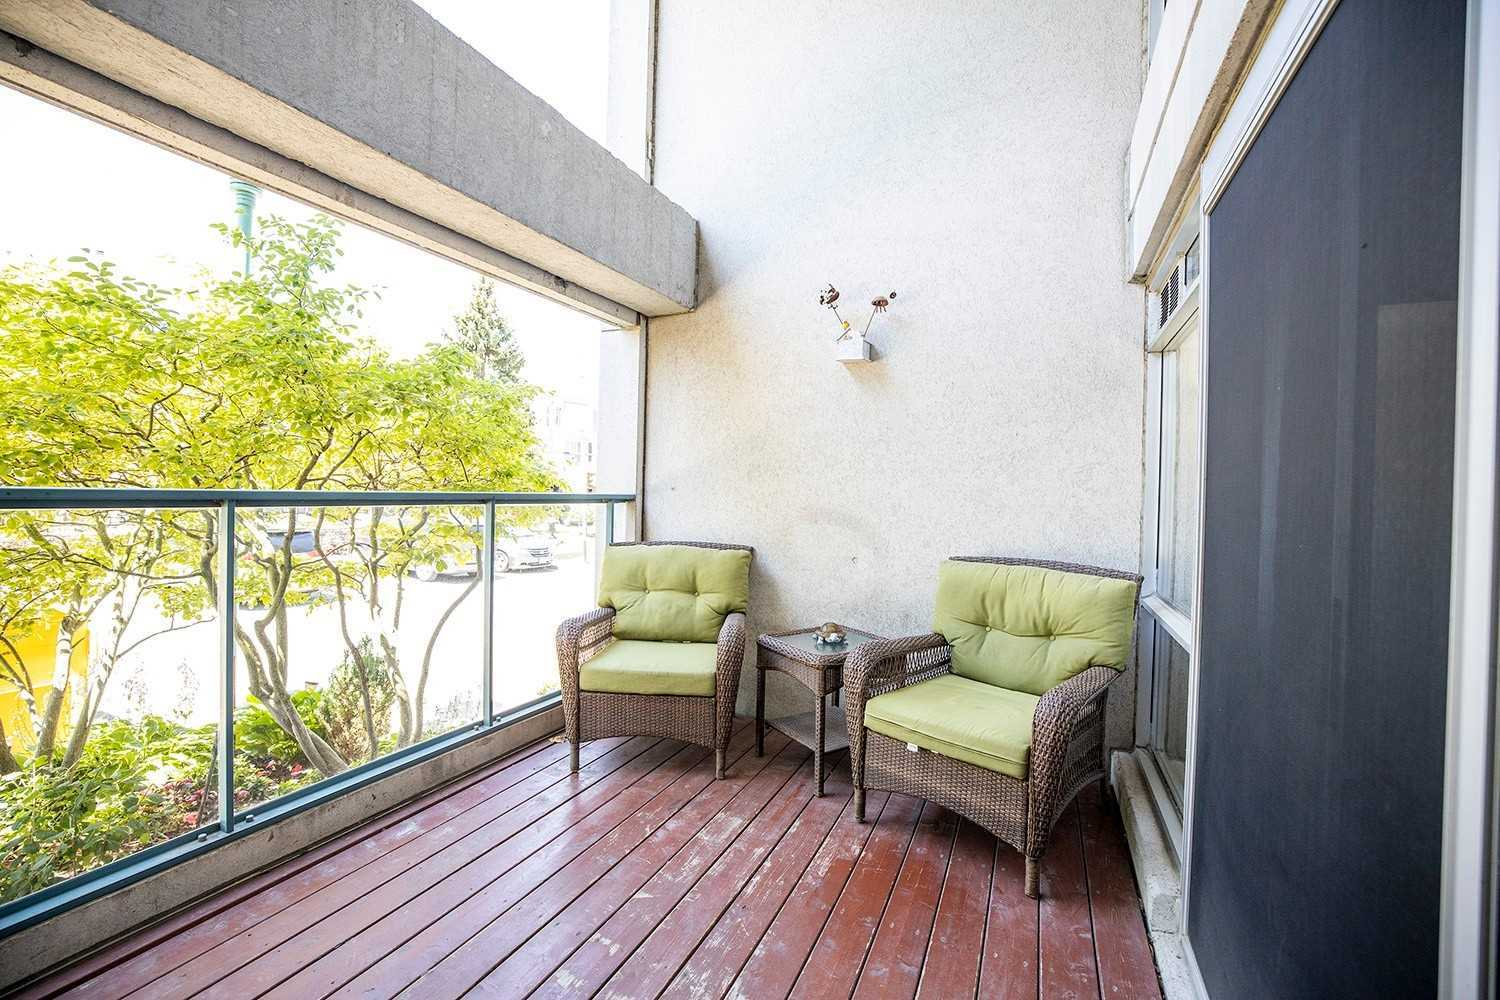 Image 20 of 20 showing inside of 2 Bedroom Condo Apt 2-Storey for Sale at 25 Cumberland Lane Unit# 112, Ajax L1S7K1